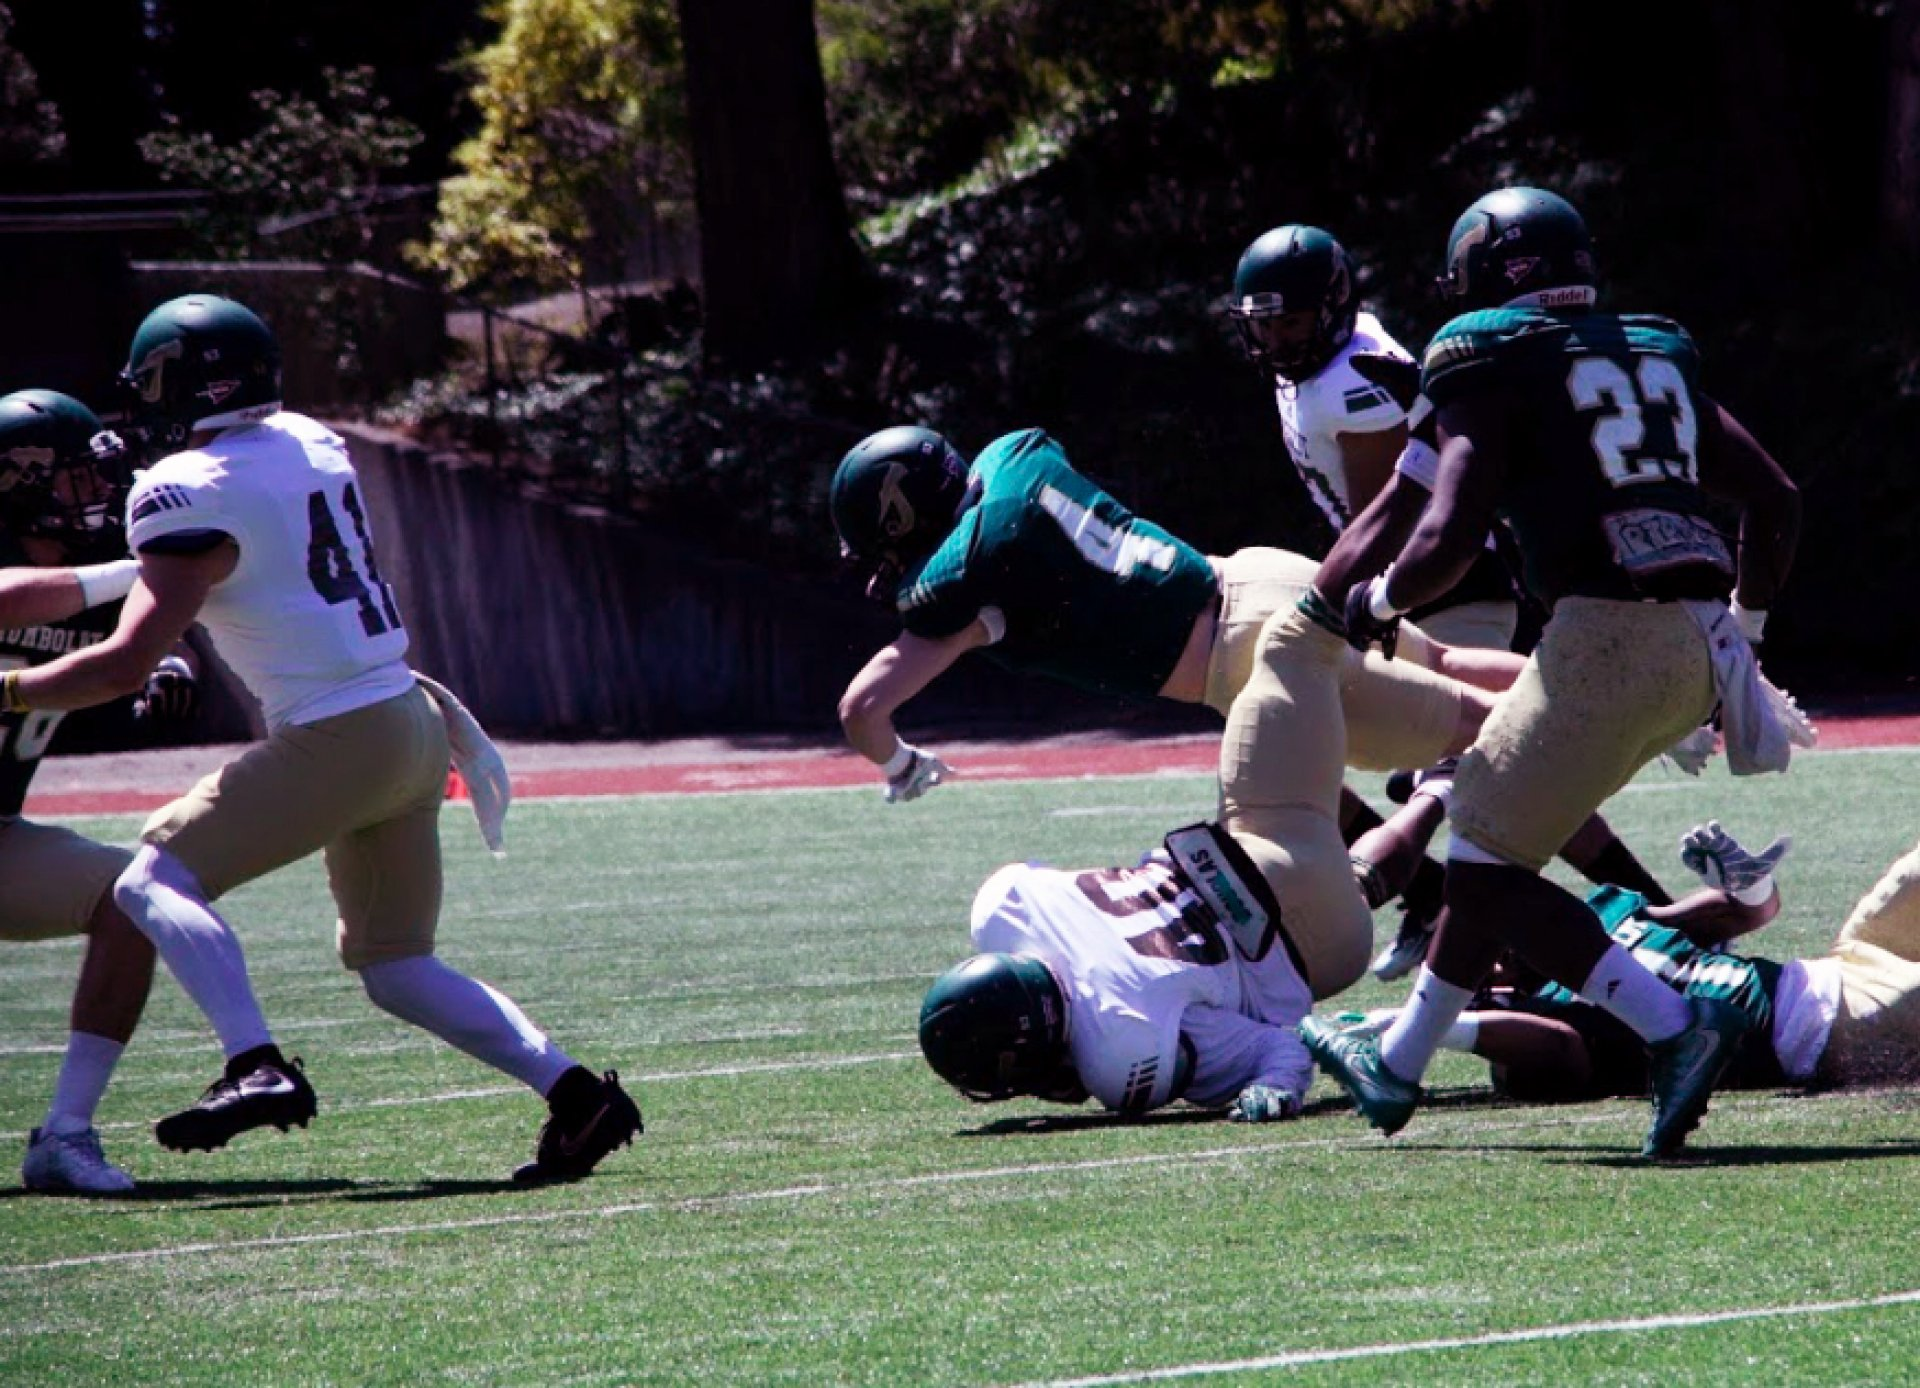 Adam Herrera (#4) and Ju'wan Murphy (#1) tackle the running back during the Spring Football game on April 21 at the Redwood Bowl. Photo by Garrett Goodnight.